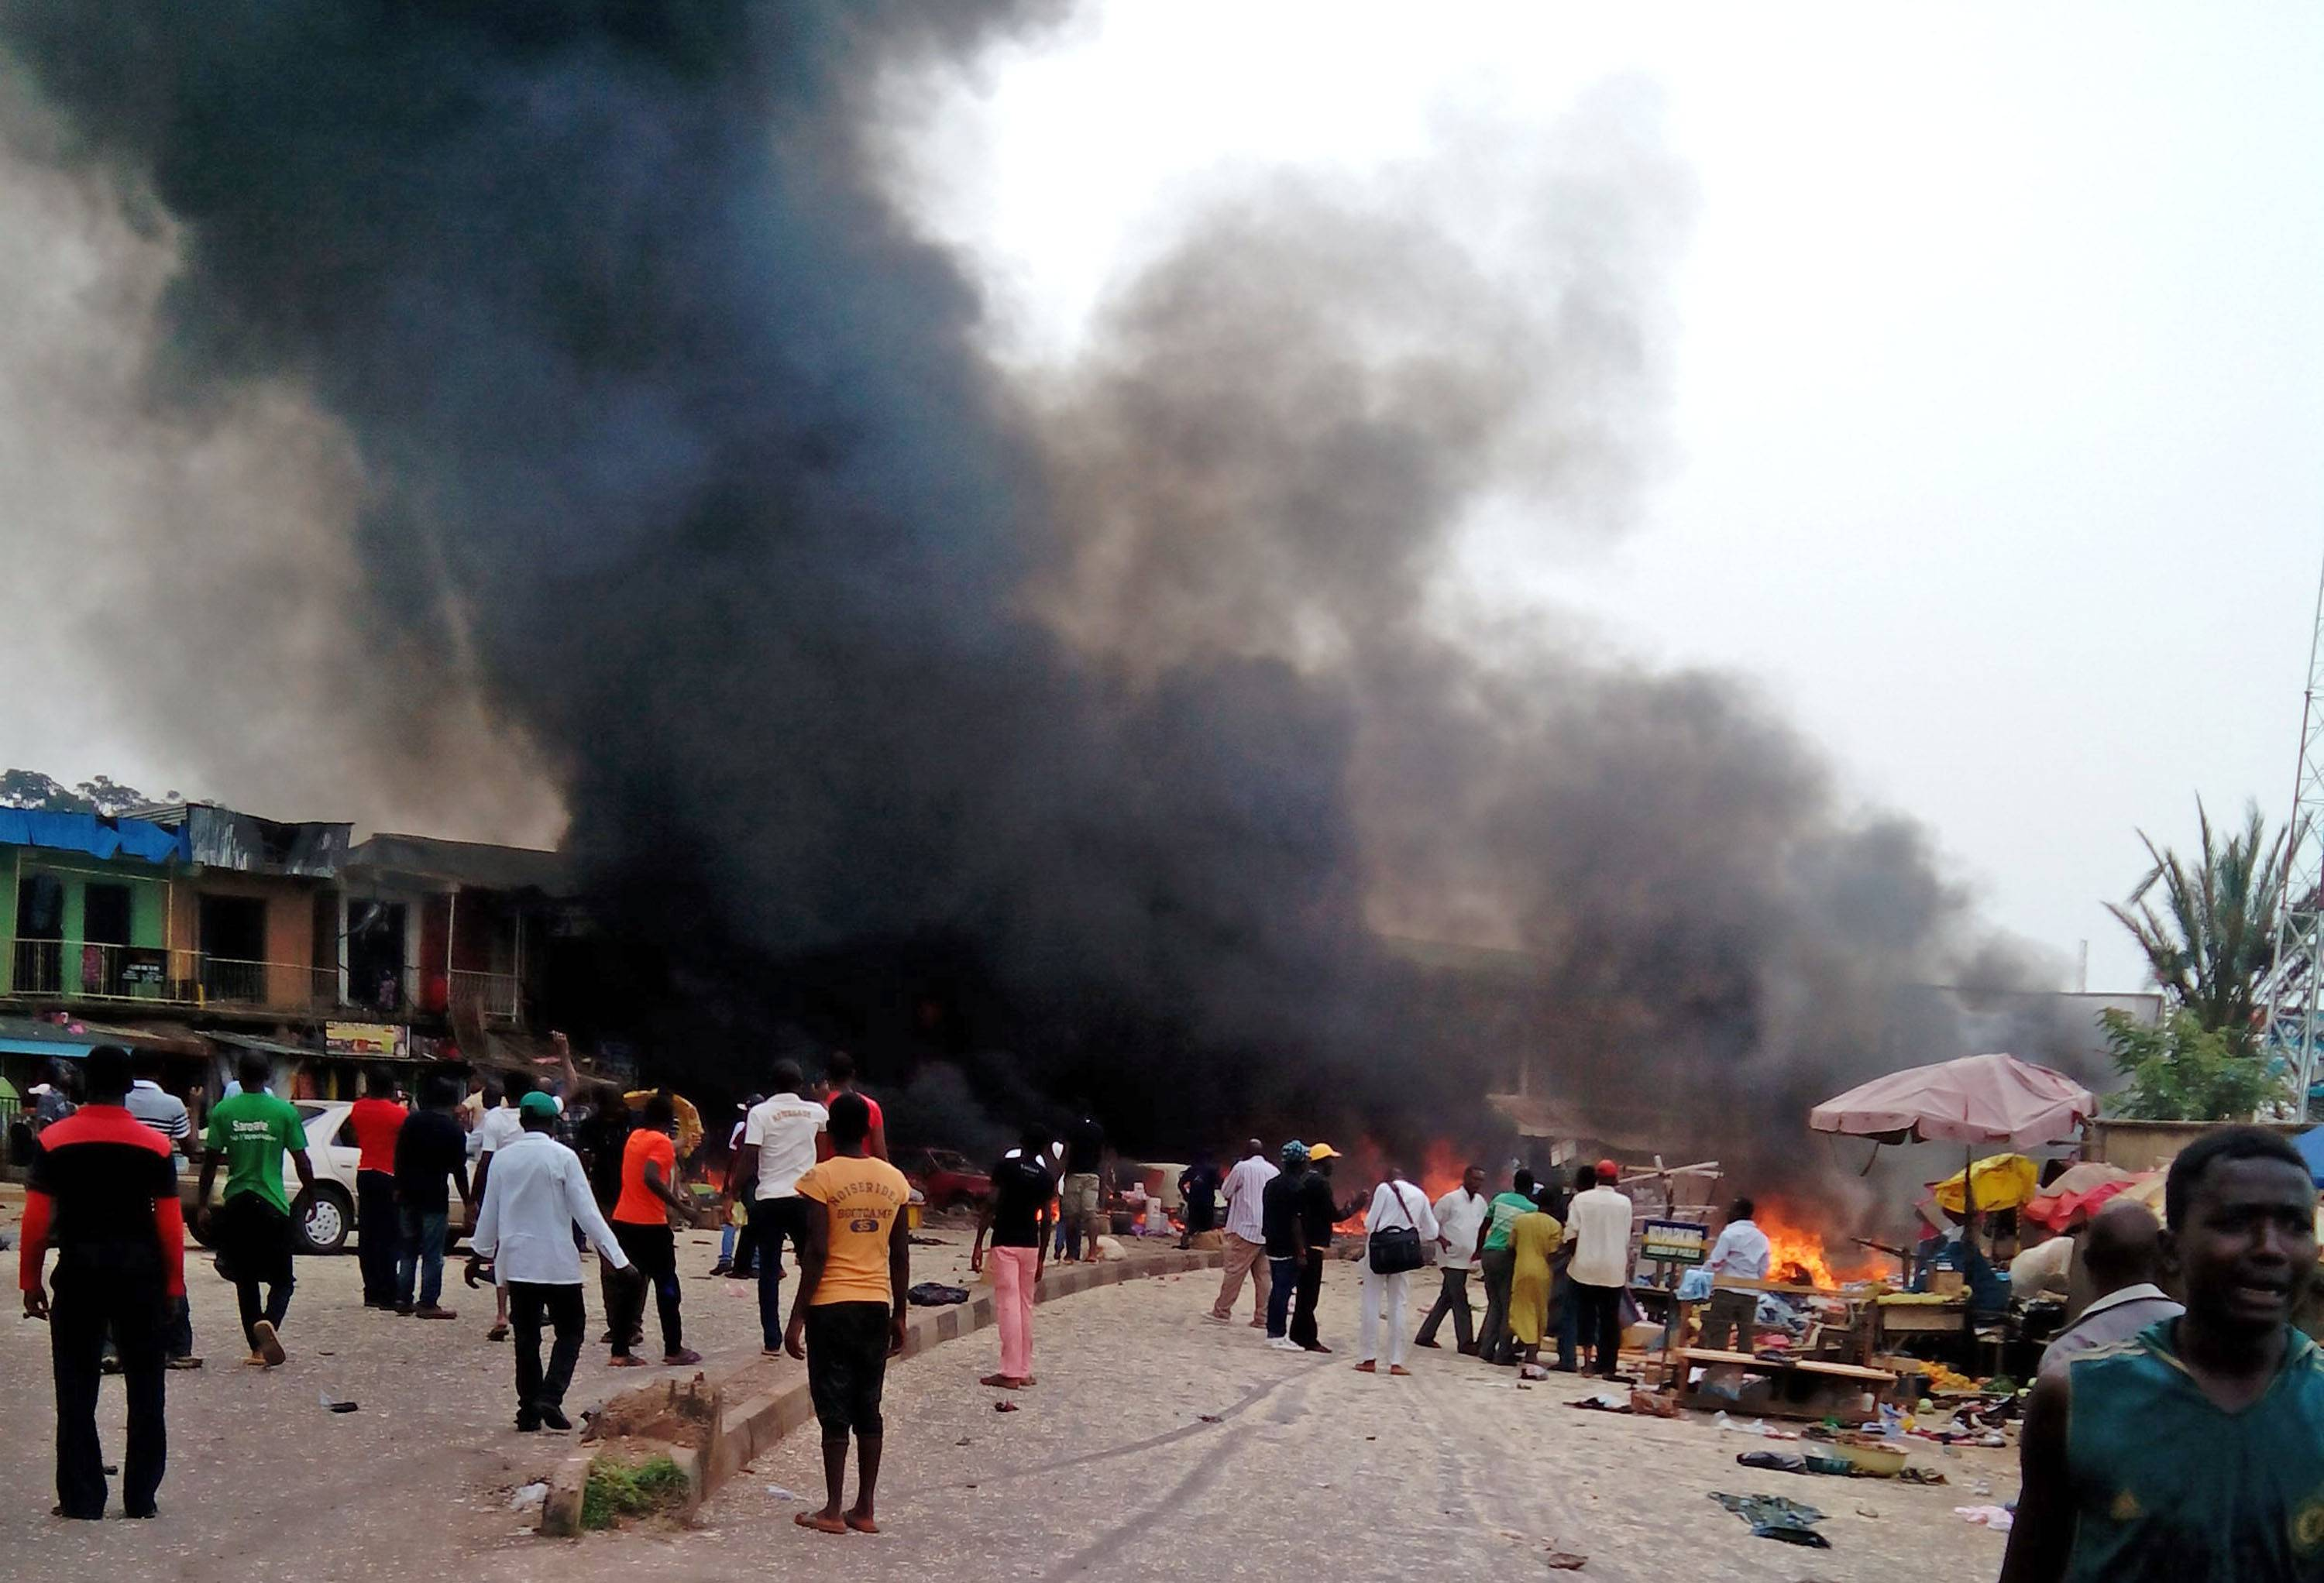 Two explosions ripped through a bustling bus terminal and market frequented by thousands of people in Nigeria's central city of Jos on Tuesday.